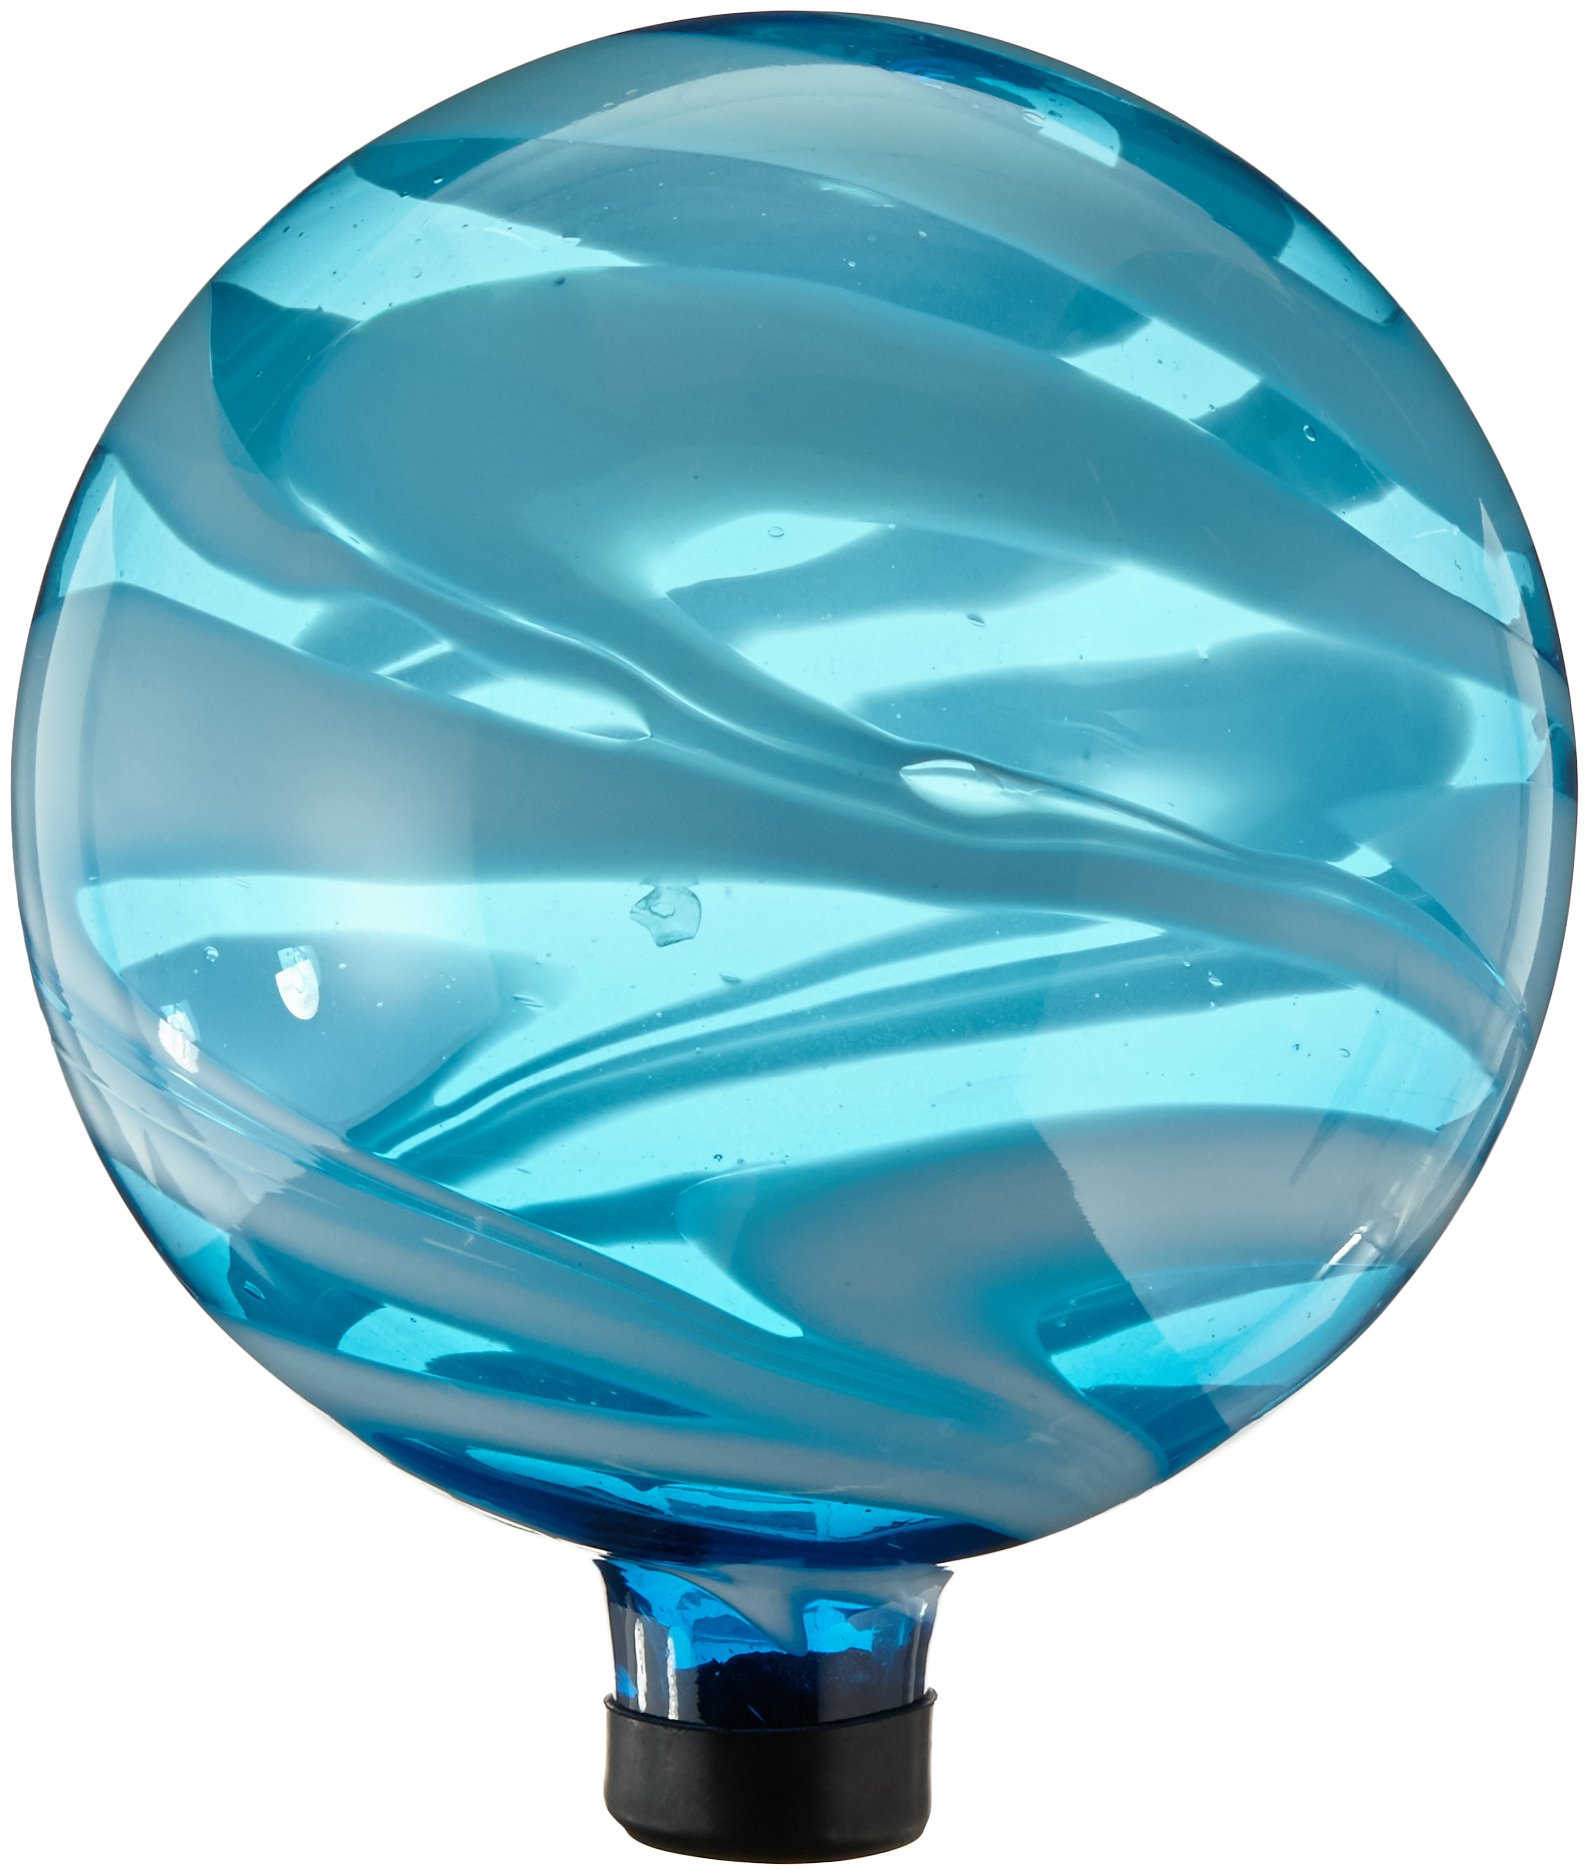 Gardener's Select A14BFG05 Glass Gazing Globe, Blue and White Swirl, 10''